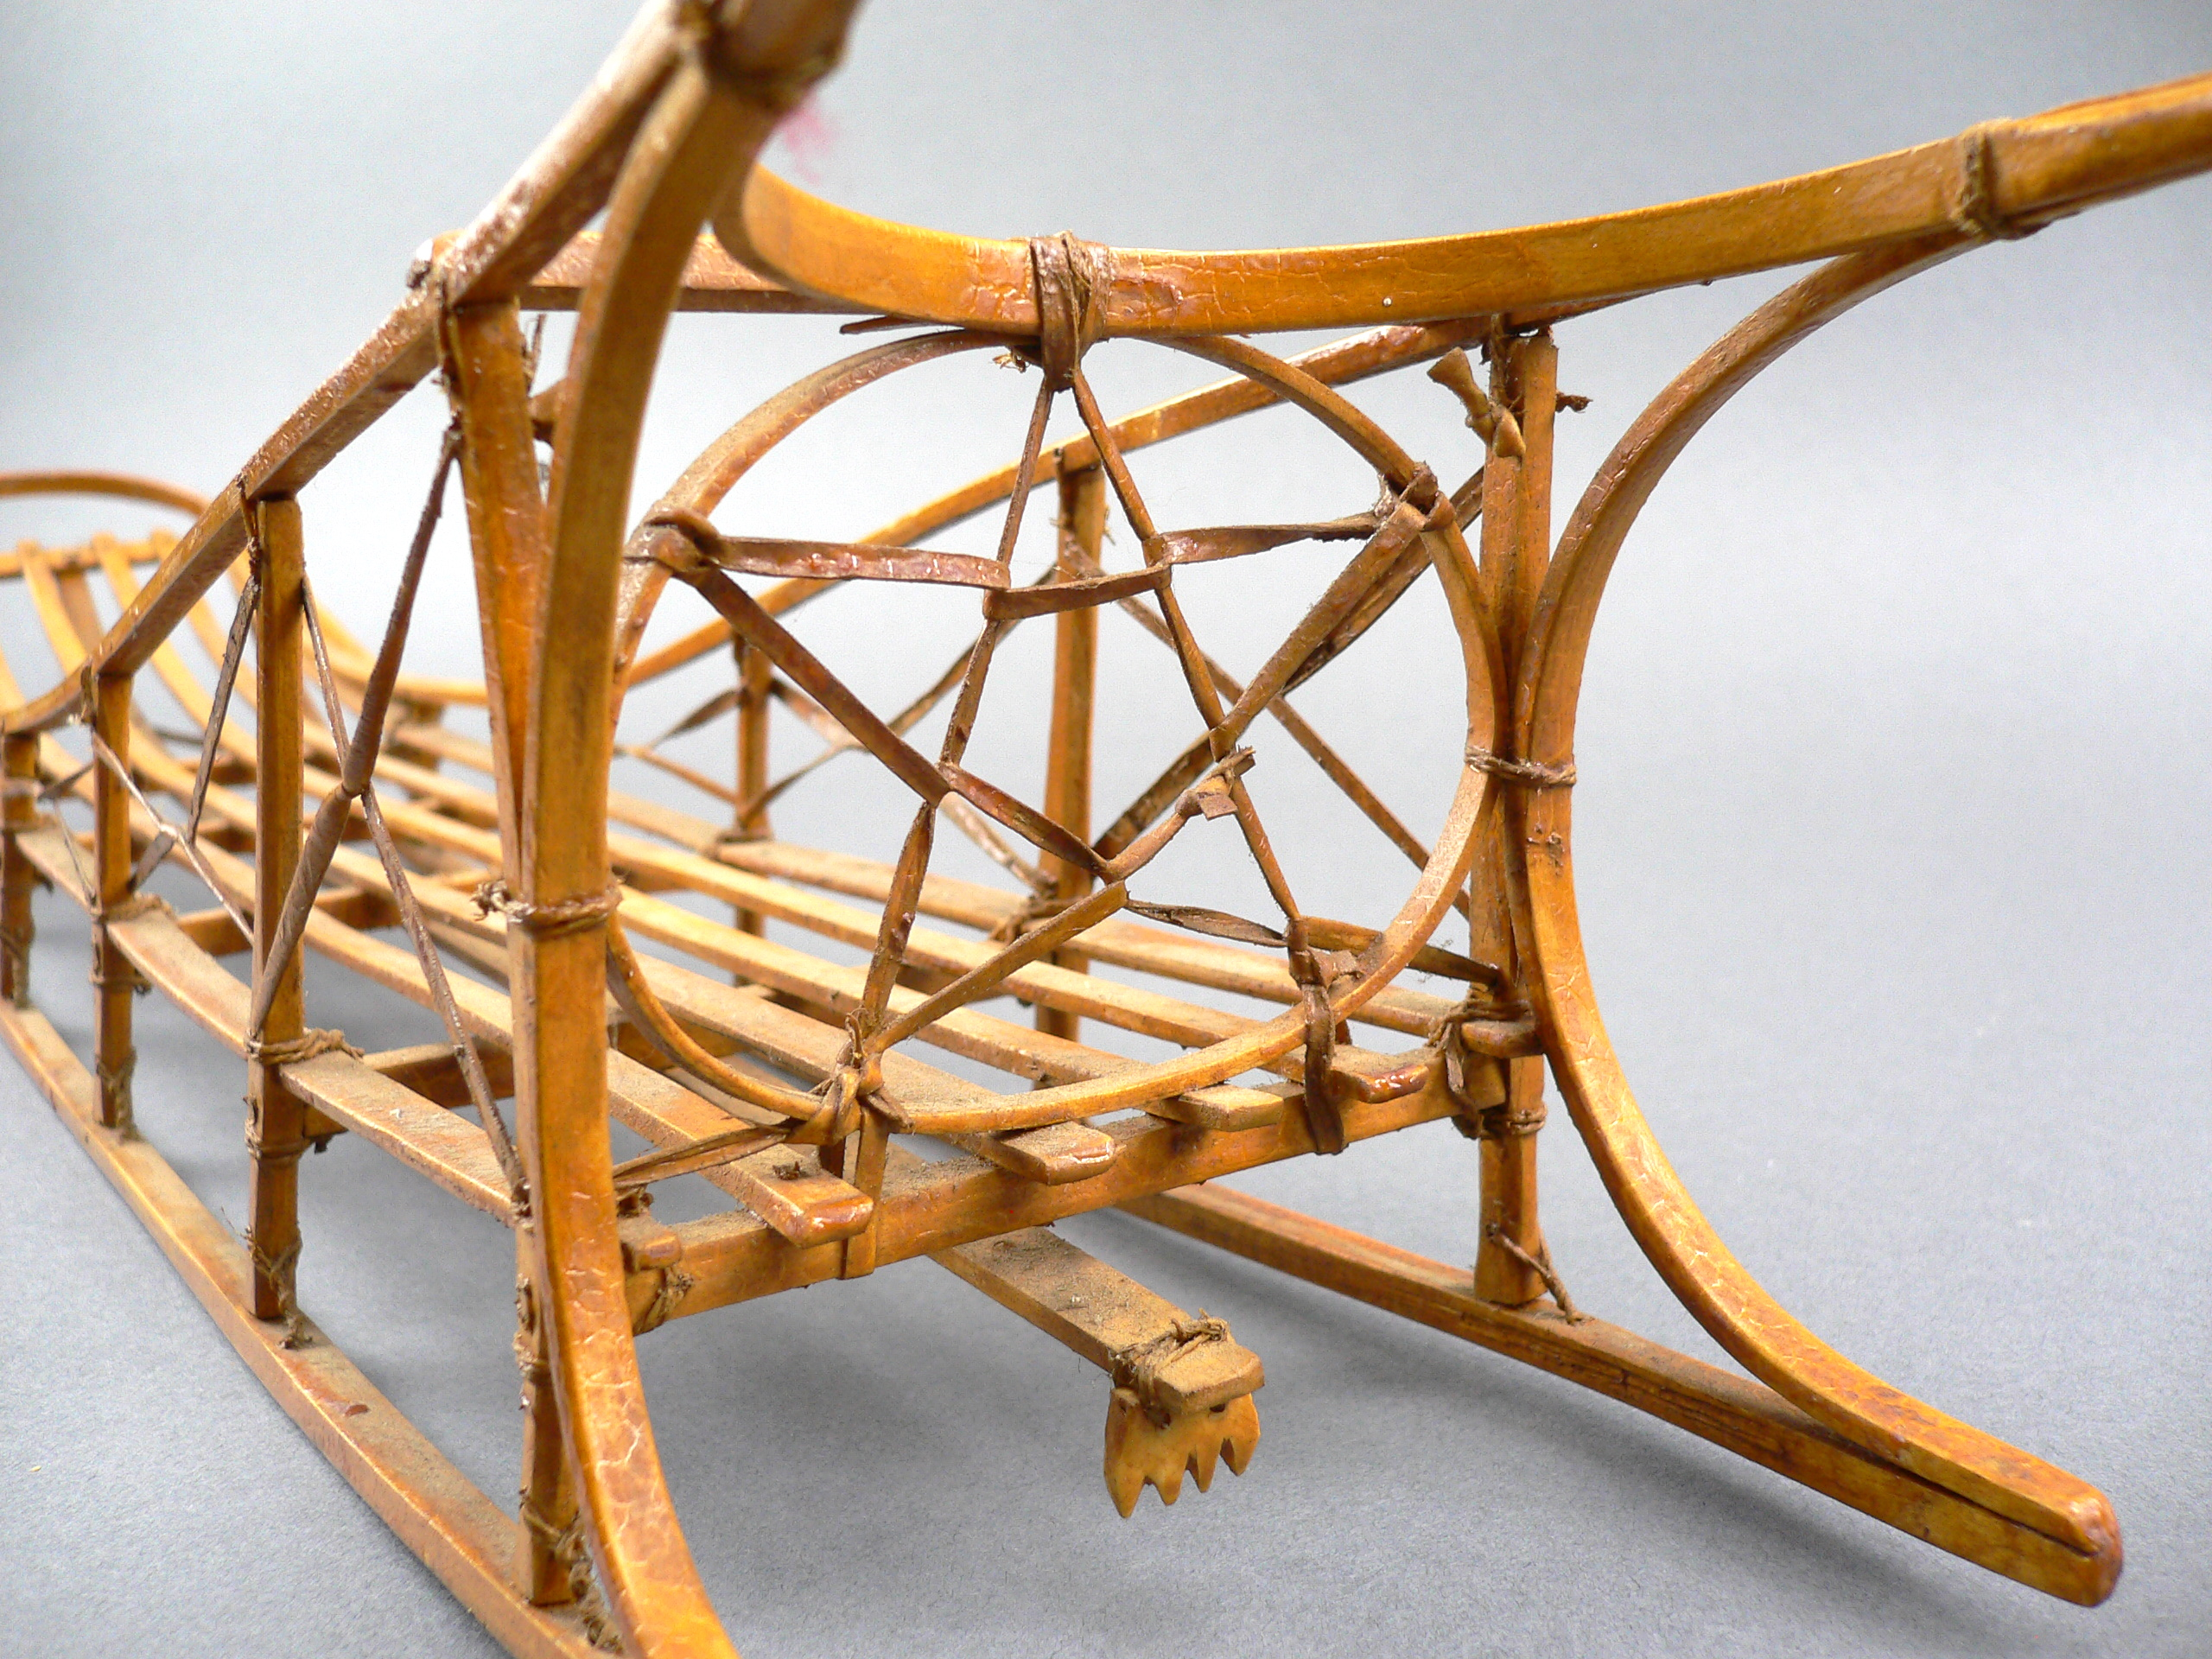 Sled Dog Craft http://sasquatchantiques.com/vintage-alaskan-inuit-eskimo-craft-hand-built-scale-model-dog-sled-24-long